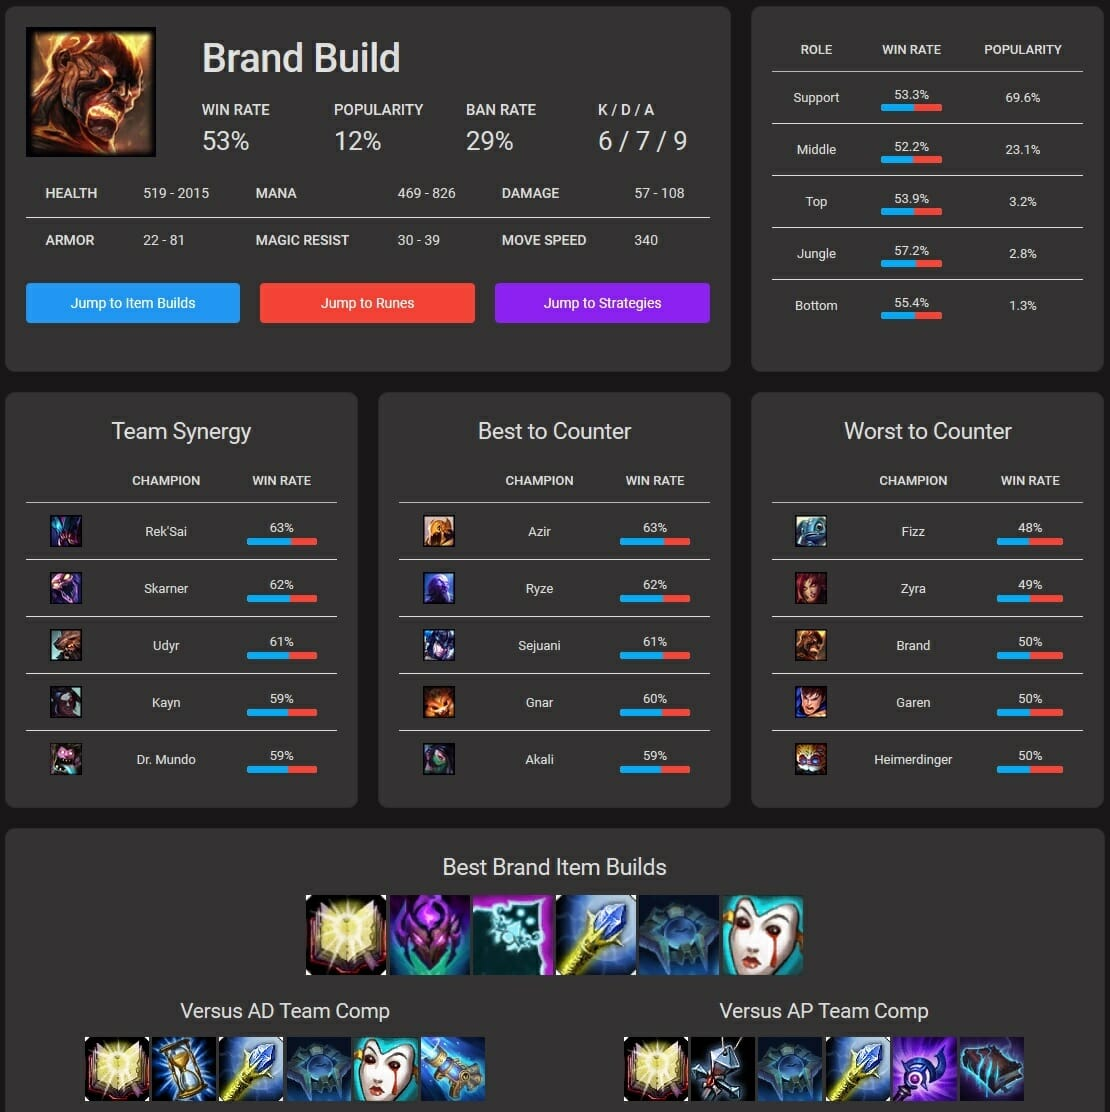 MOBA Champion Meta Stats to Help players Get Better at the Game